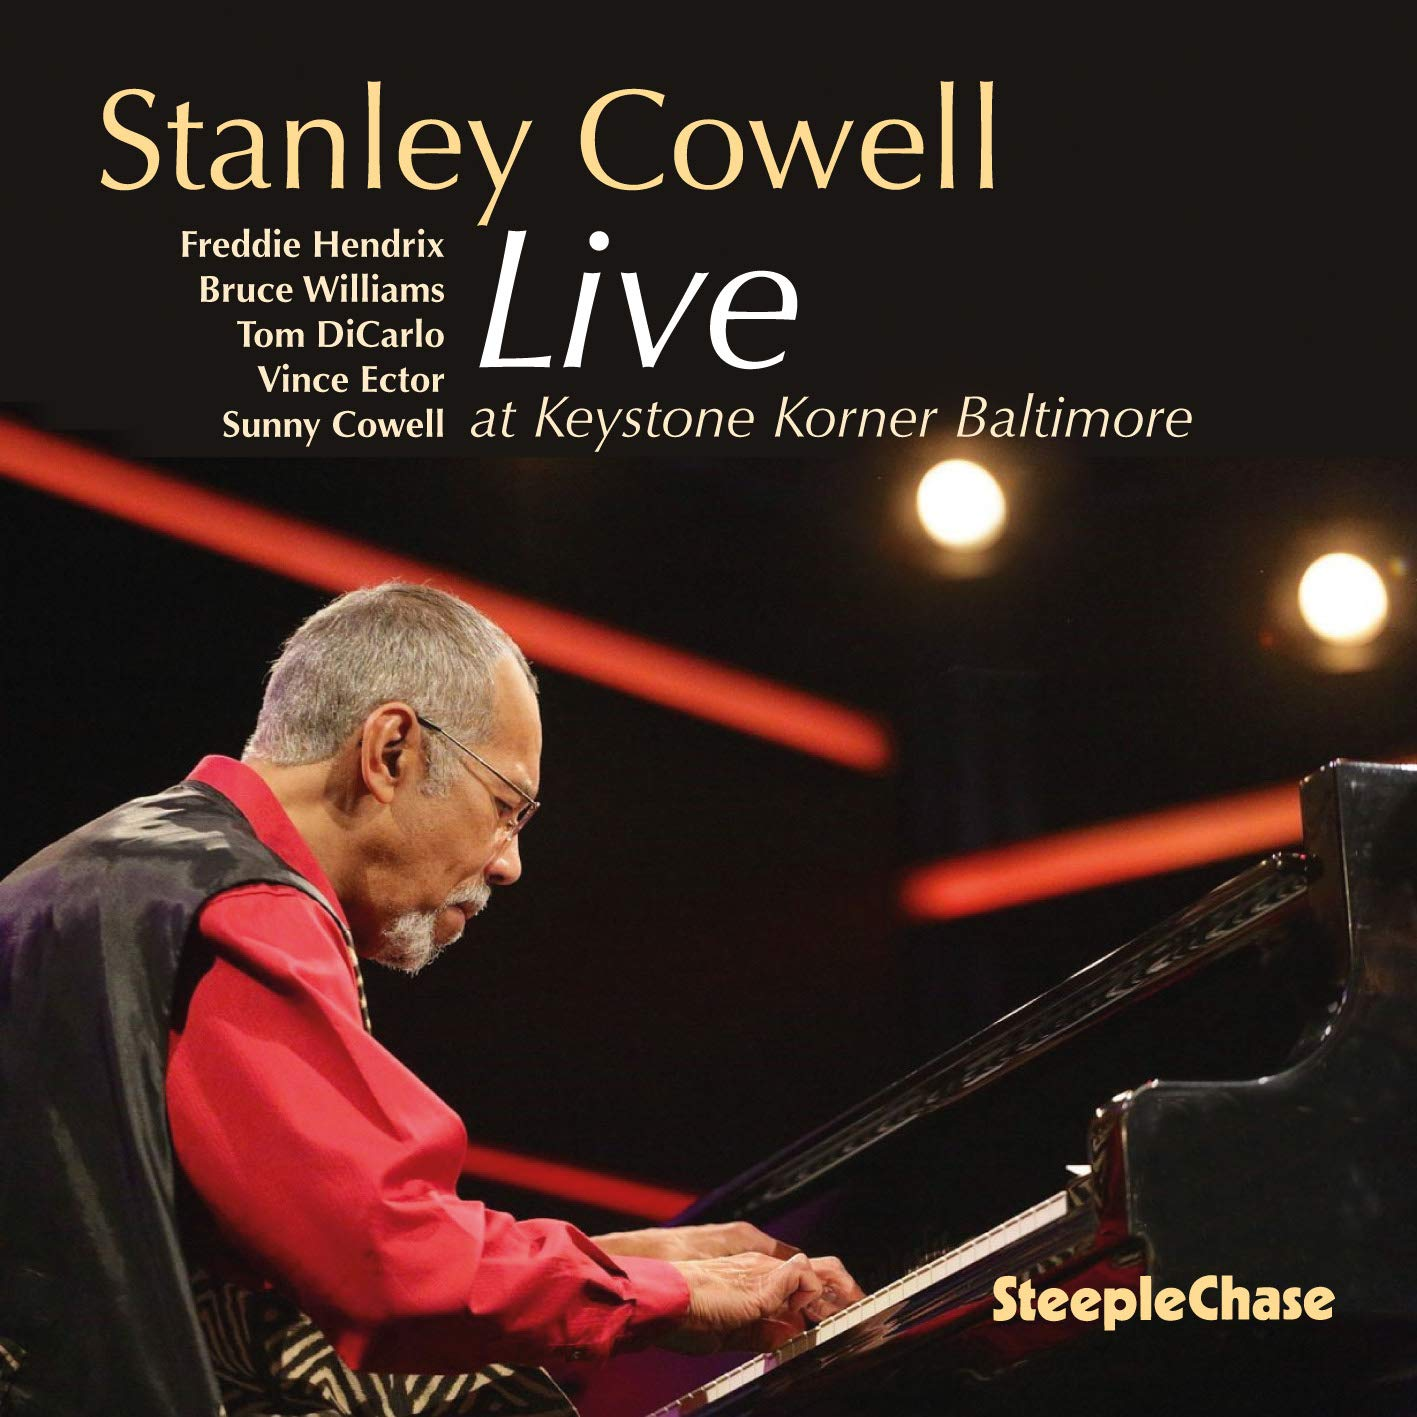 STANLEY COWELL - Live at Keystone Korner Baltimore cover